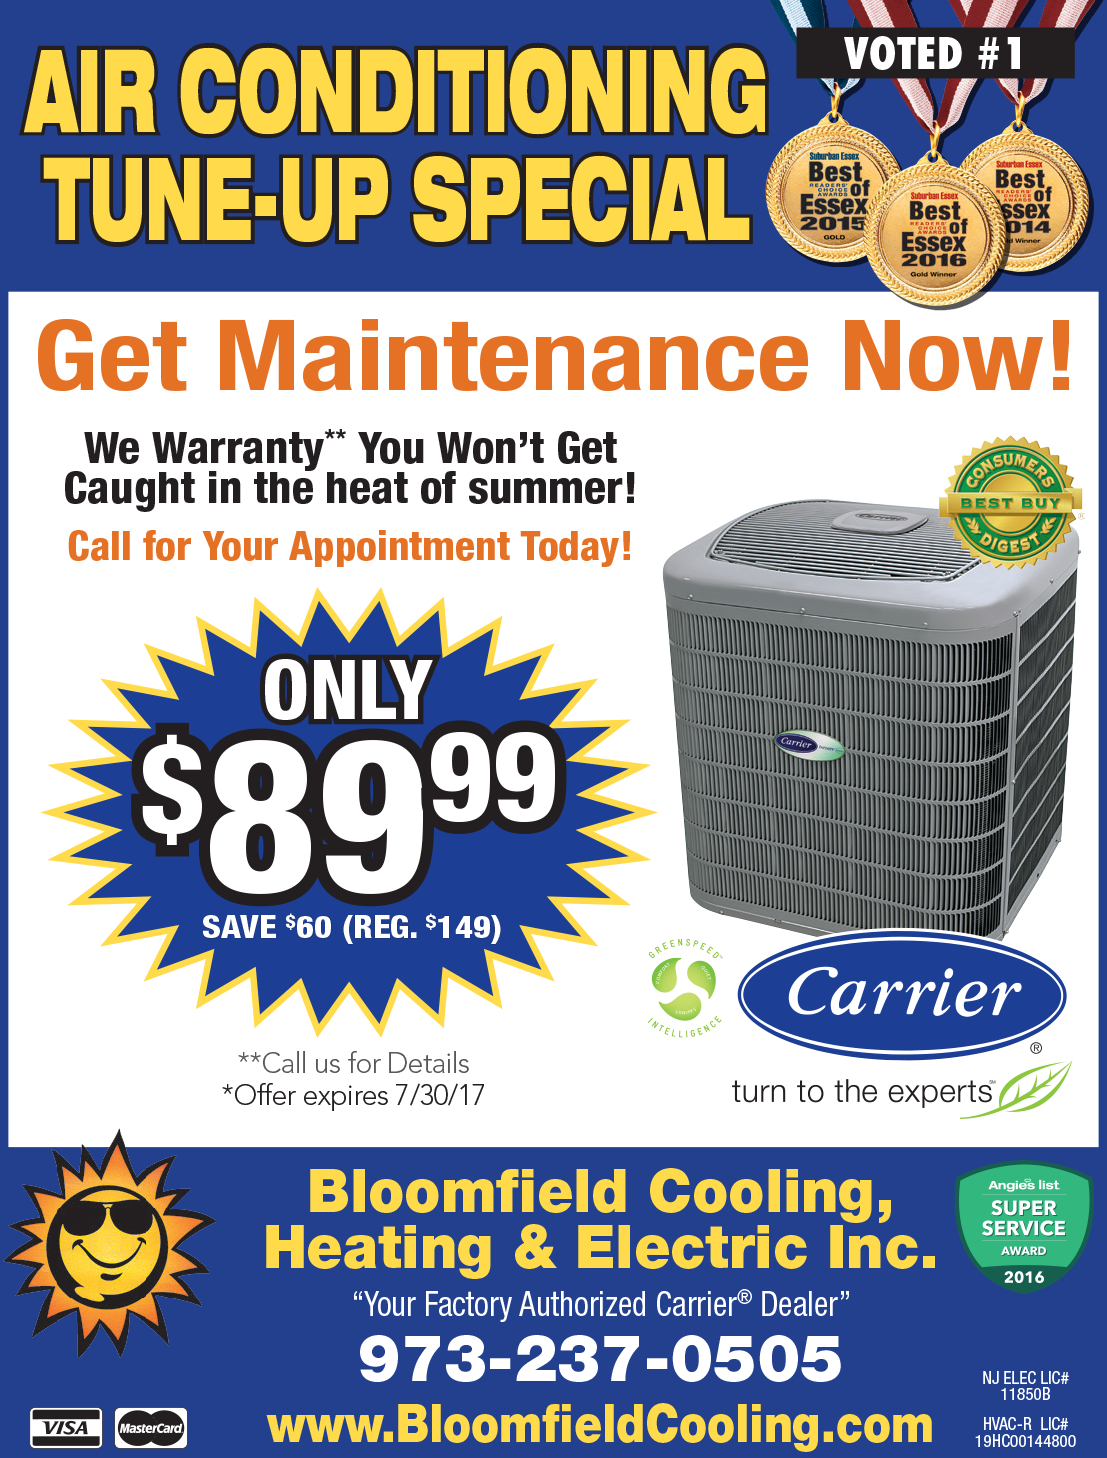 Air Conditioning Tune-up Special - Bloomfield Cooling Spring 2017